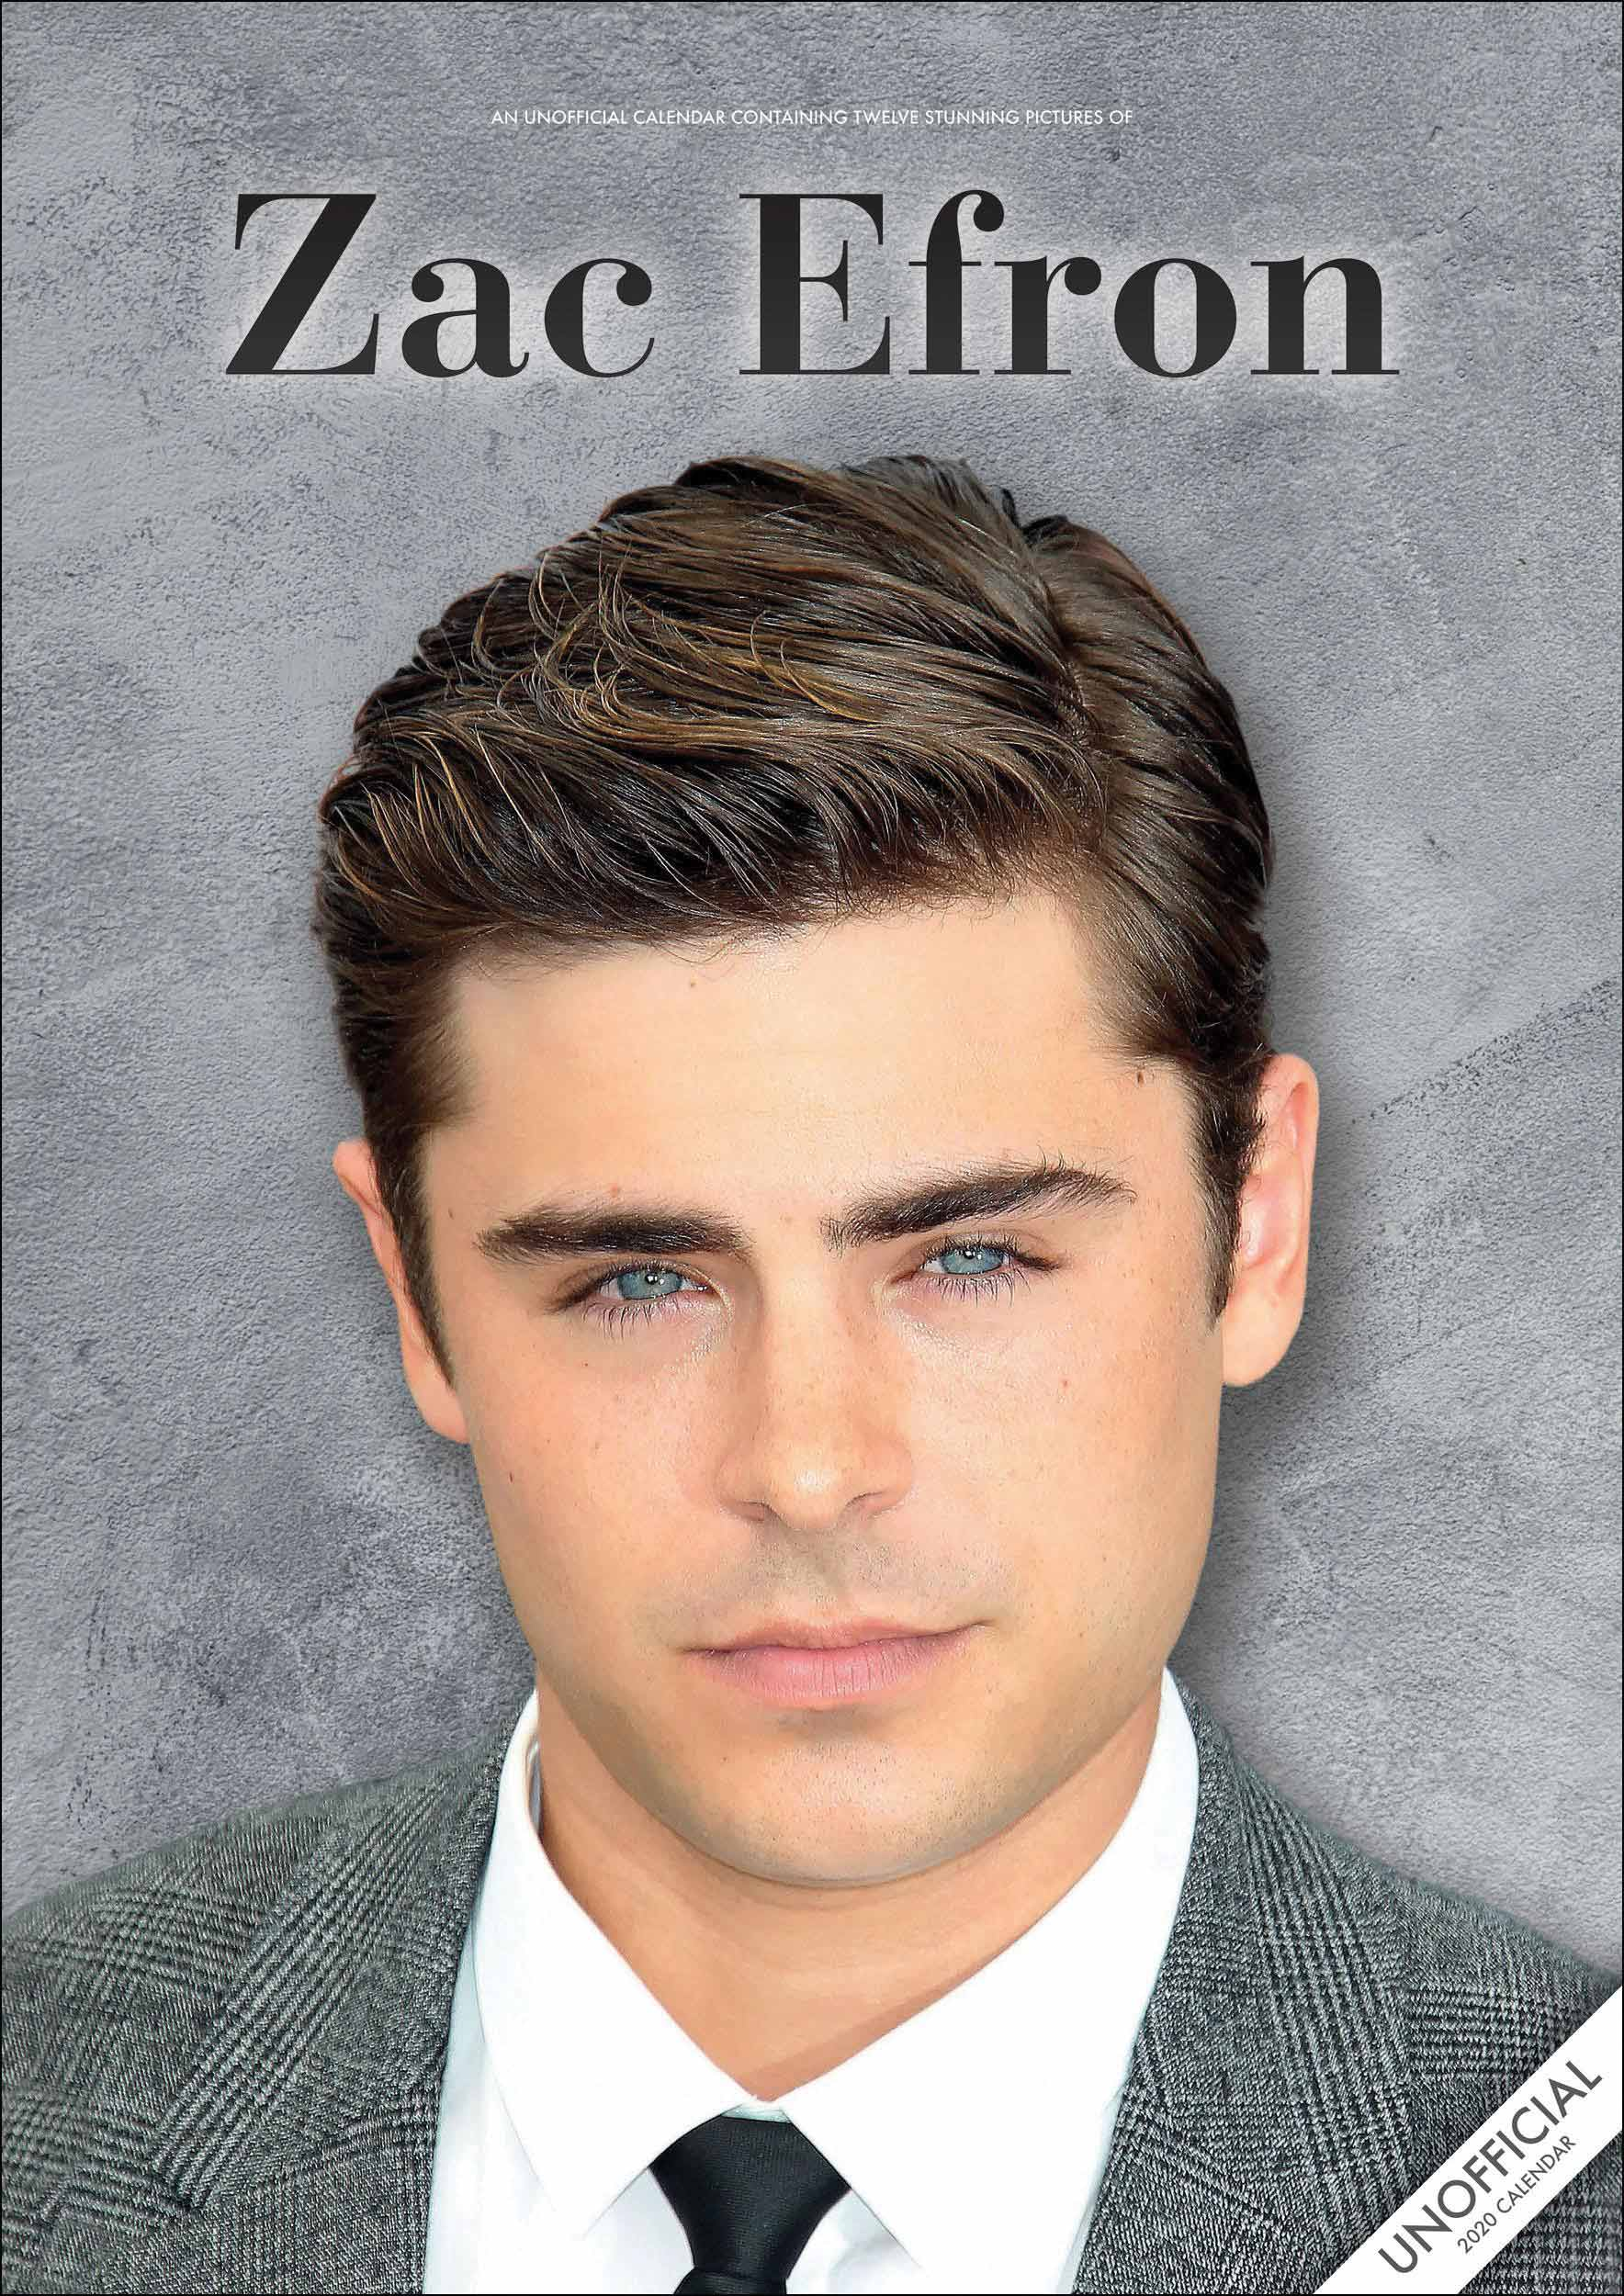 zac efron extremely wicked